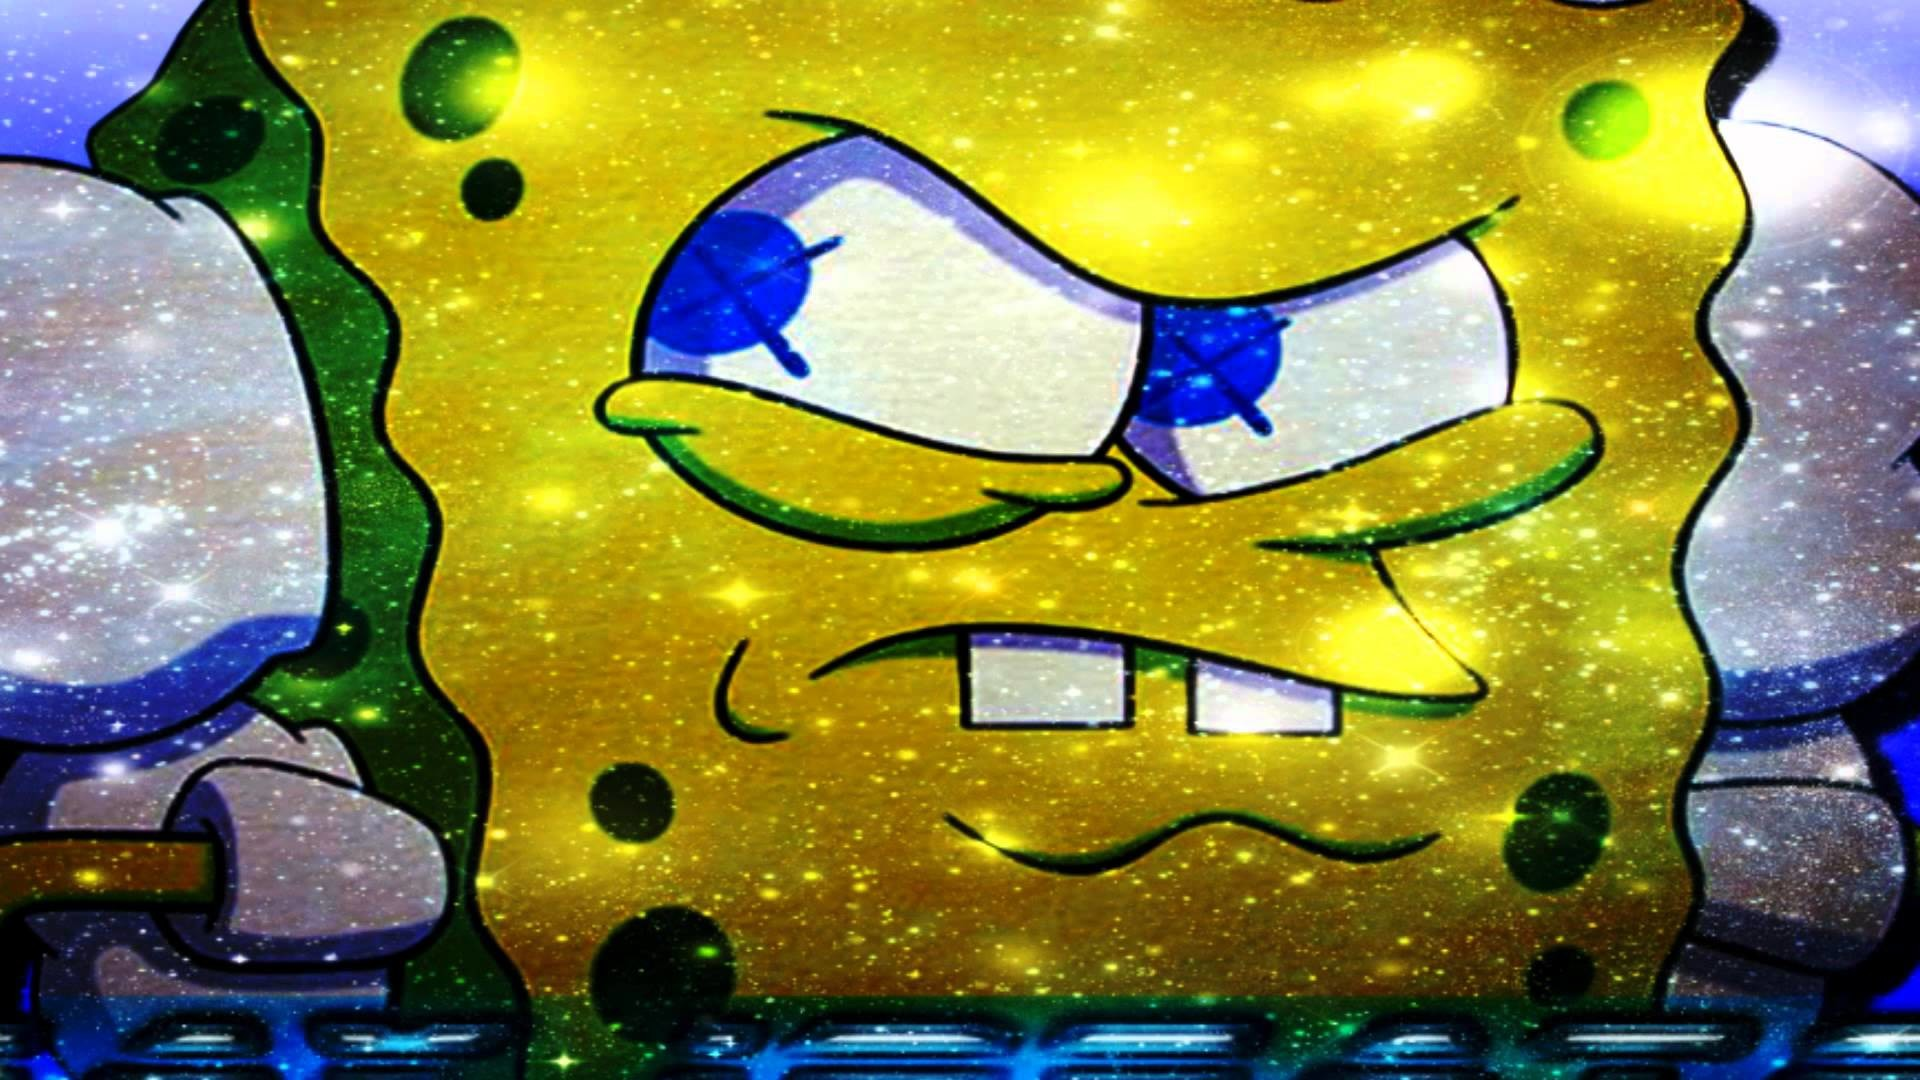 Res: 1920x1080, Gangster Spongebob Desktop Wallpapers, Gangster Spongebob Photos